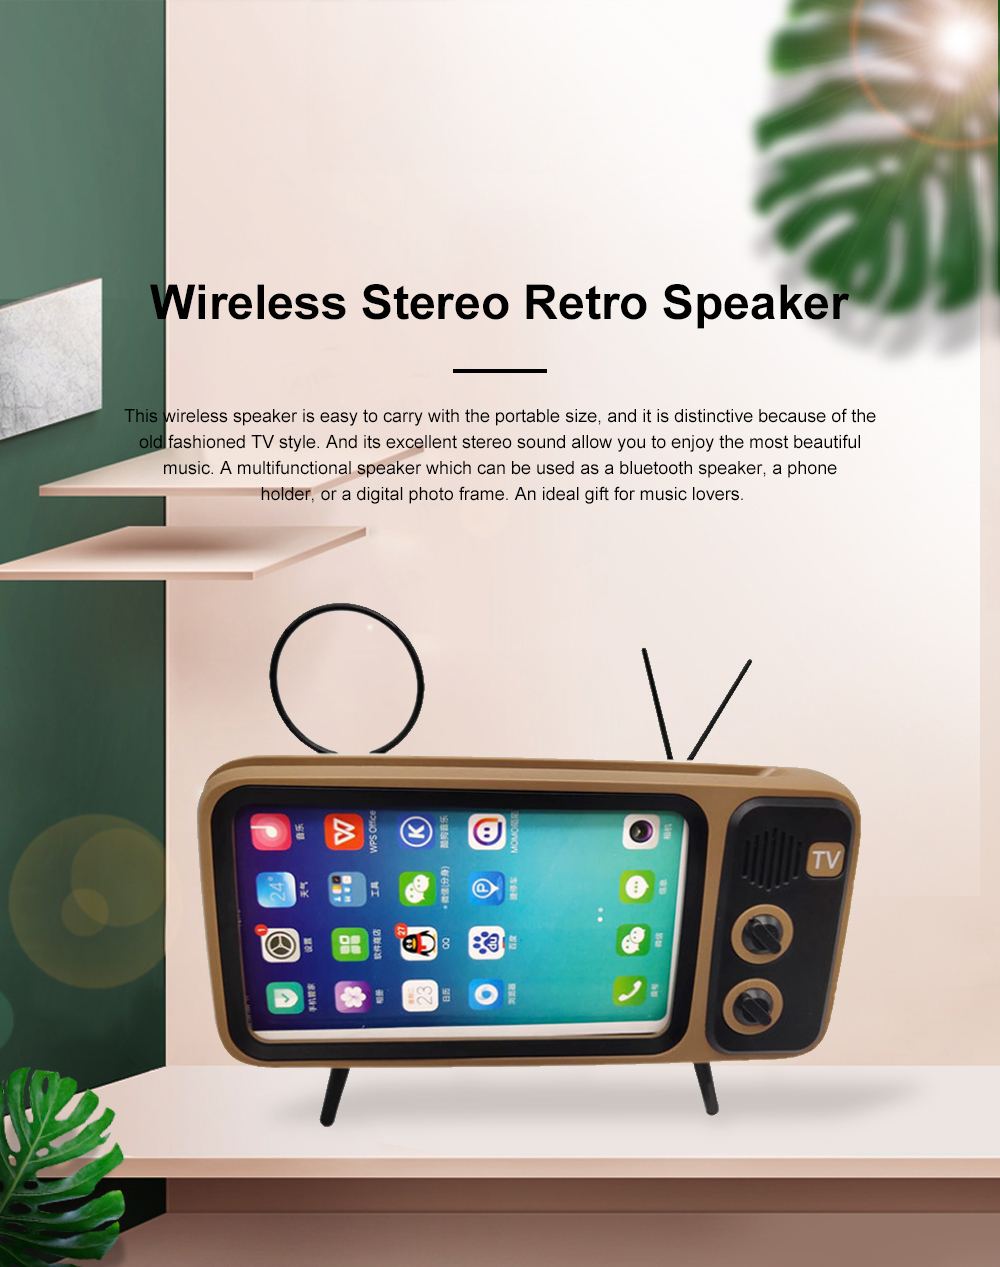 Retro Bluetooth Speaker Portable Wireless Stereo Speaker Old Fashioned Classic TV Style Music Player Phone Stand Mount 0